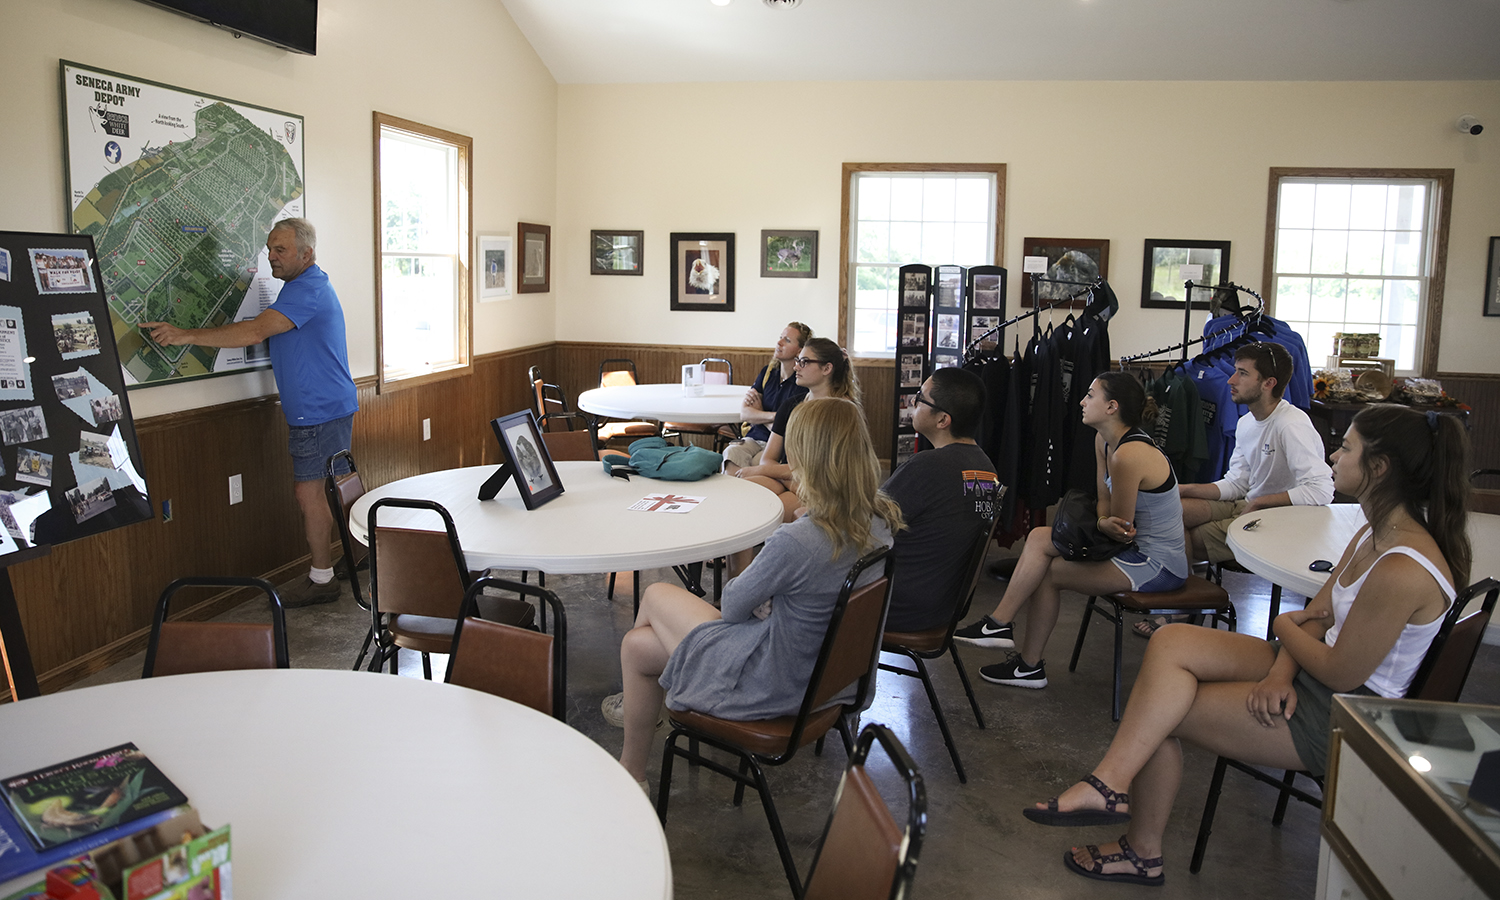 President of Seneca White Deer, Inc. Dennis Money informs a group of students about his organizations' work to preserve the unique wildlife and military history of the Seneca Depot in Romulus, N.Y.